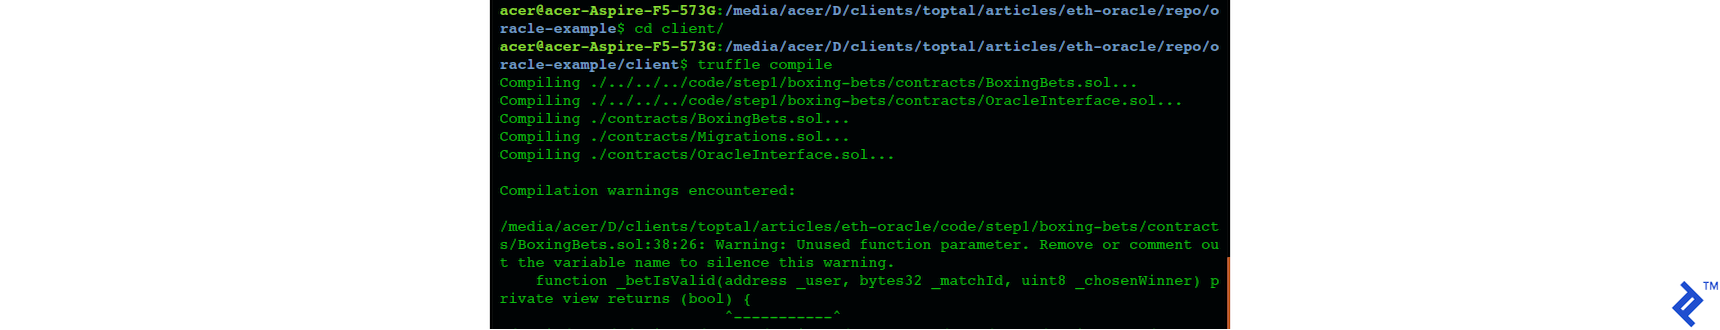 Screenshot of compiling and migrating the contract